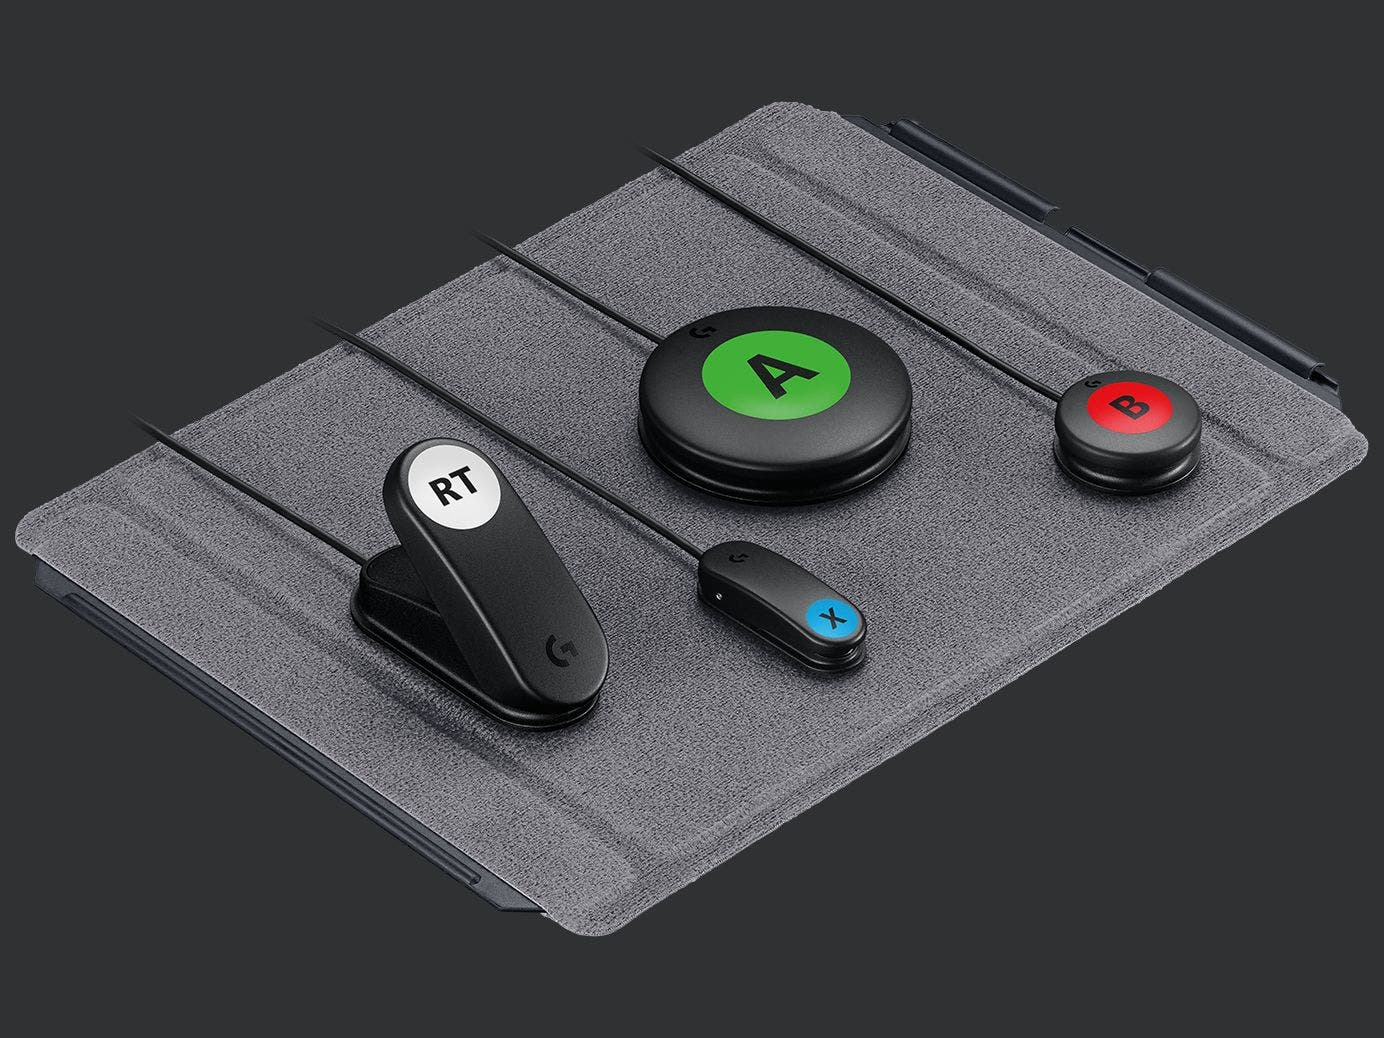 Adaptative Gaming Kit de Logitech para Xbox Adaptative Controller ya disponible 6